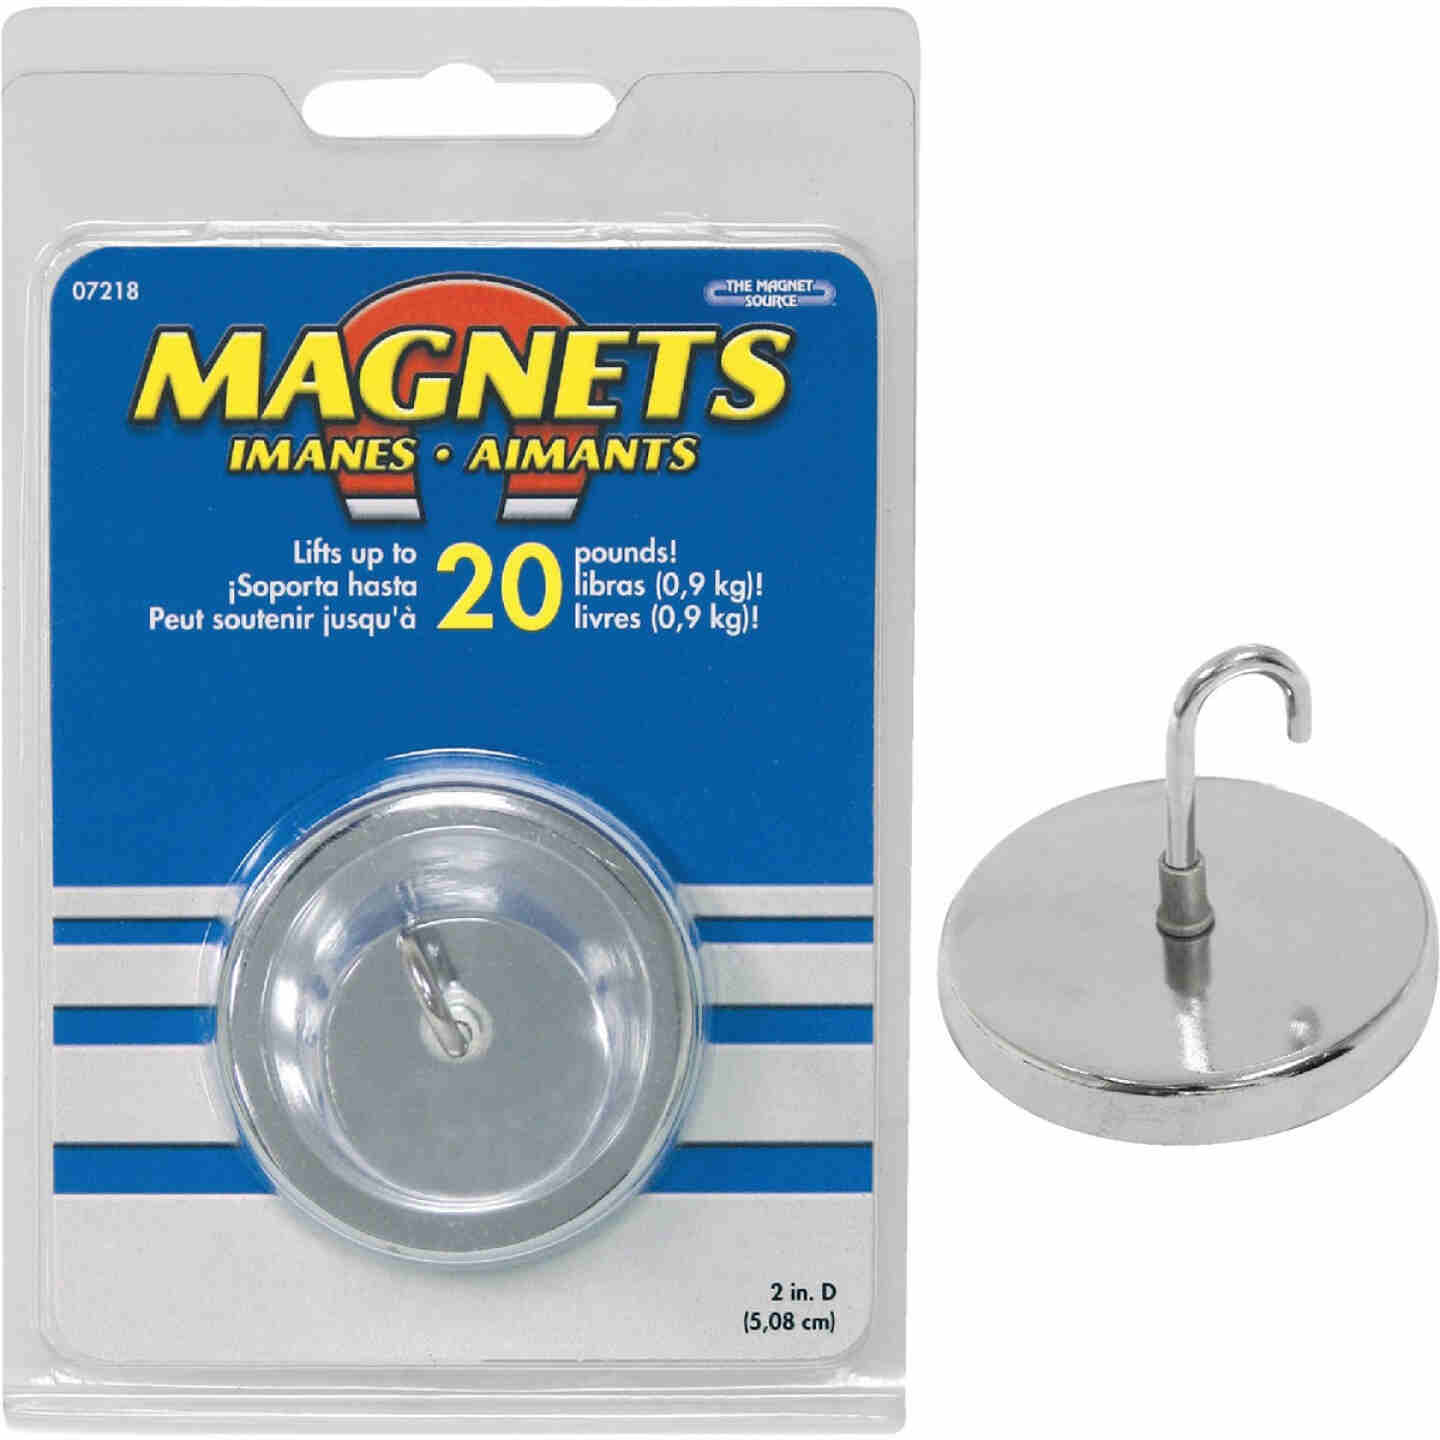 Master Magnetics 20 Lb. Magnetic 2 in. Handi-Hook Image 1